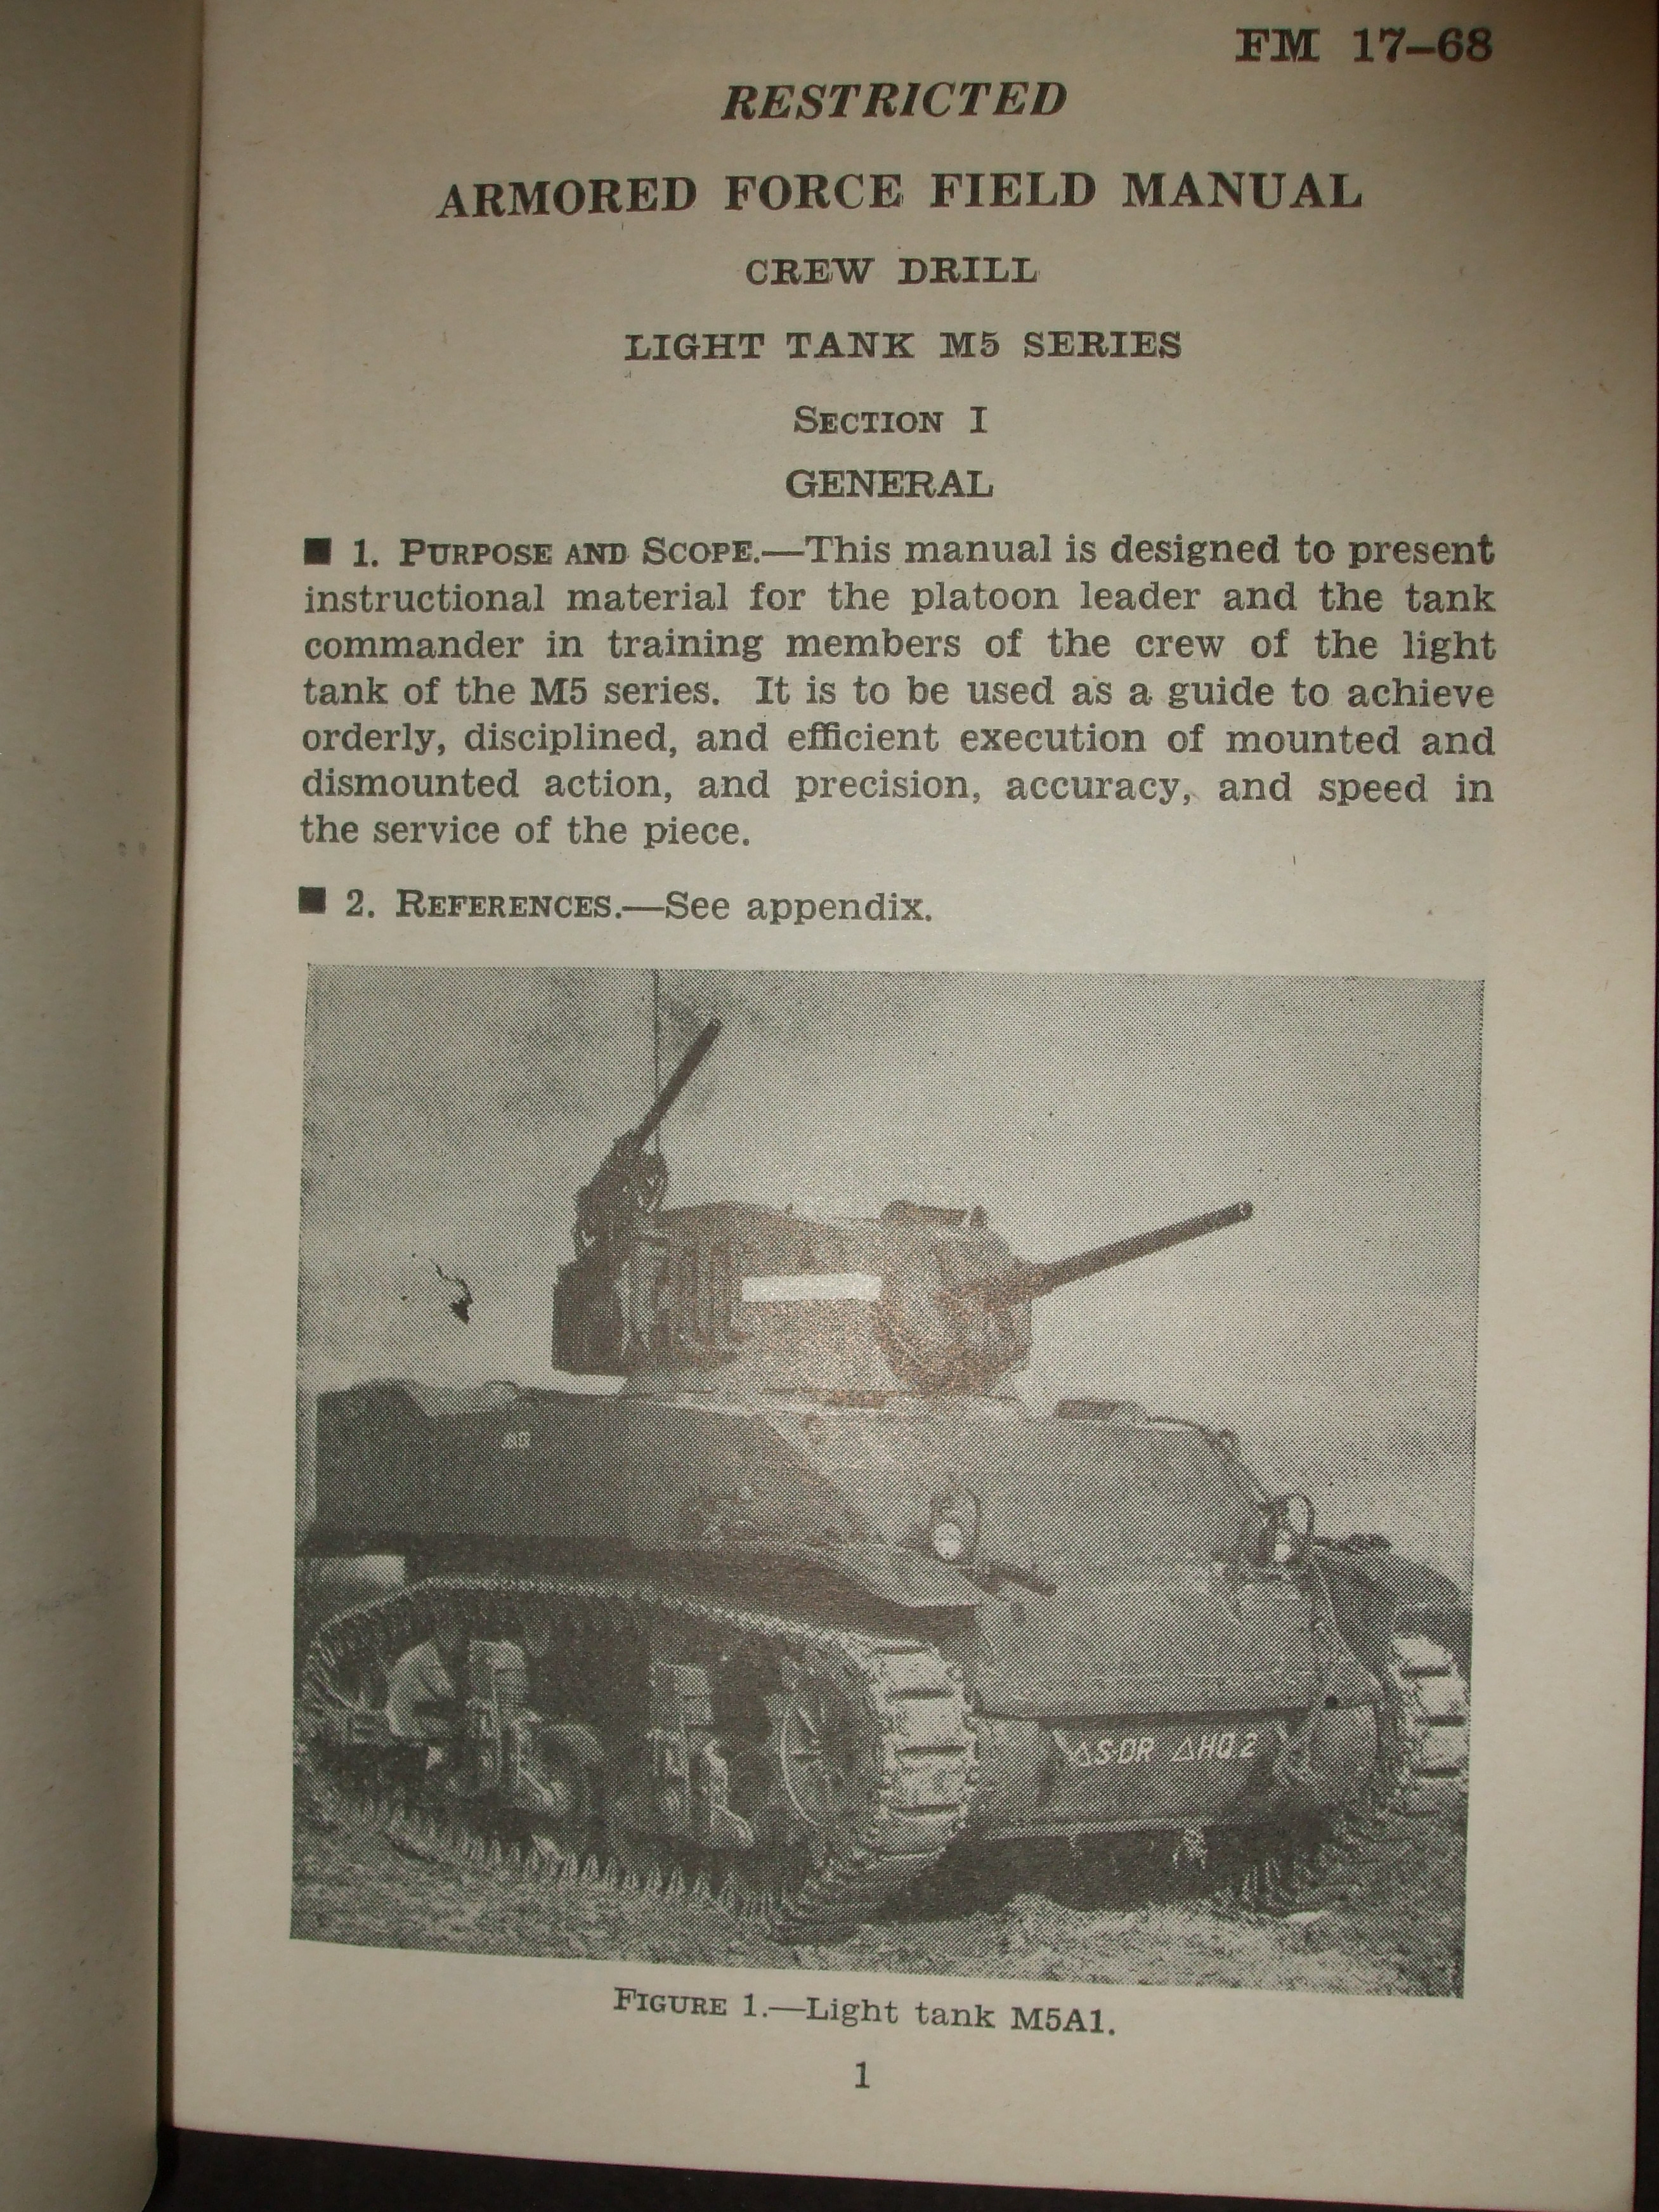 FM 17-68, WD AFFM, Crew Drill, Light Tank M5 Series : 1943